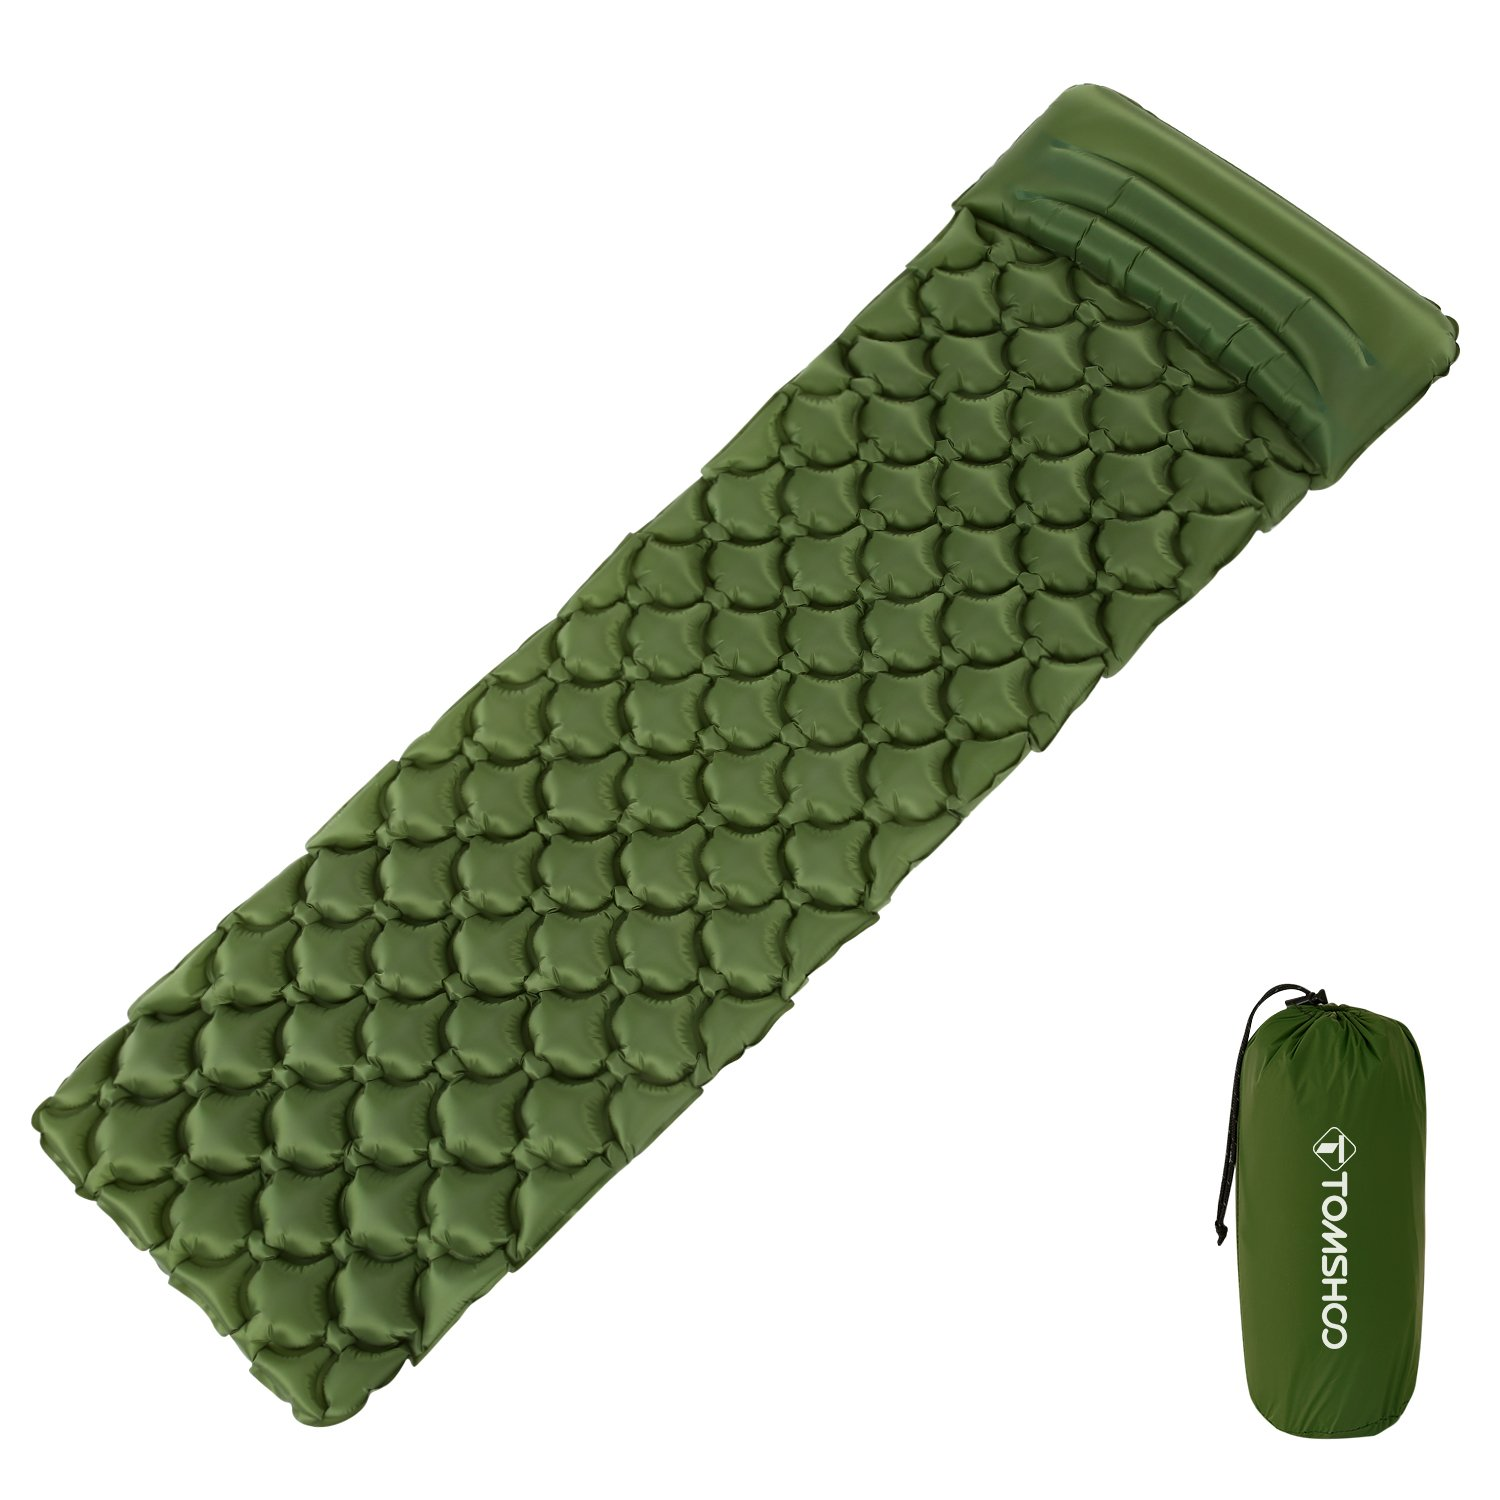 TOMSHOO Camping Sleeping Pad Ultralight Inflatable Mattress with Pillow for Outdoor Camping Hiking Backpacking Travel (Dark Green) by TOMSHOO